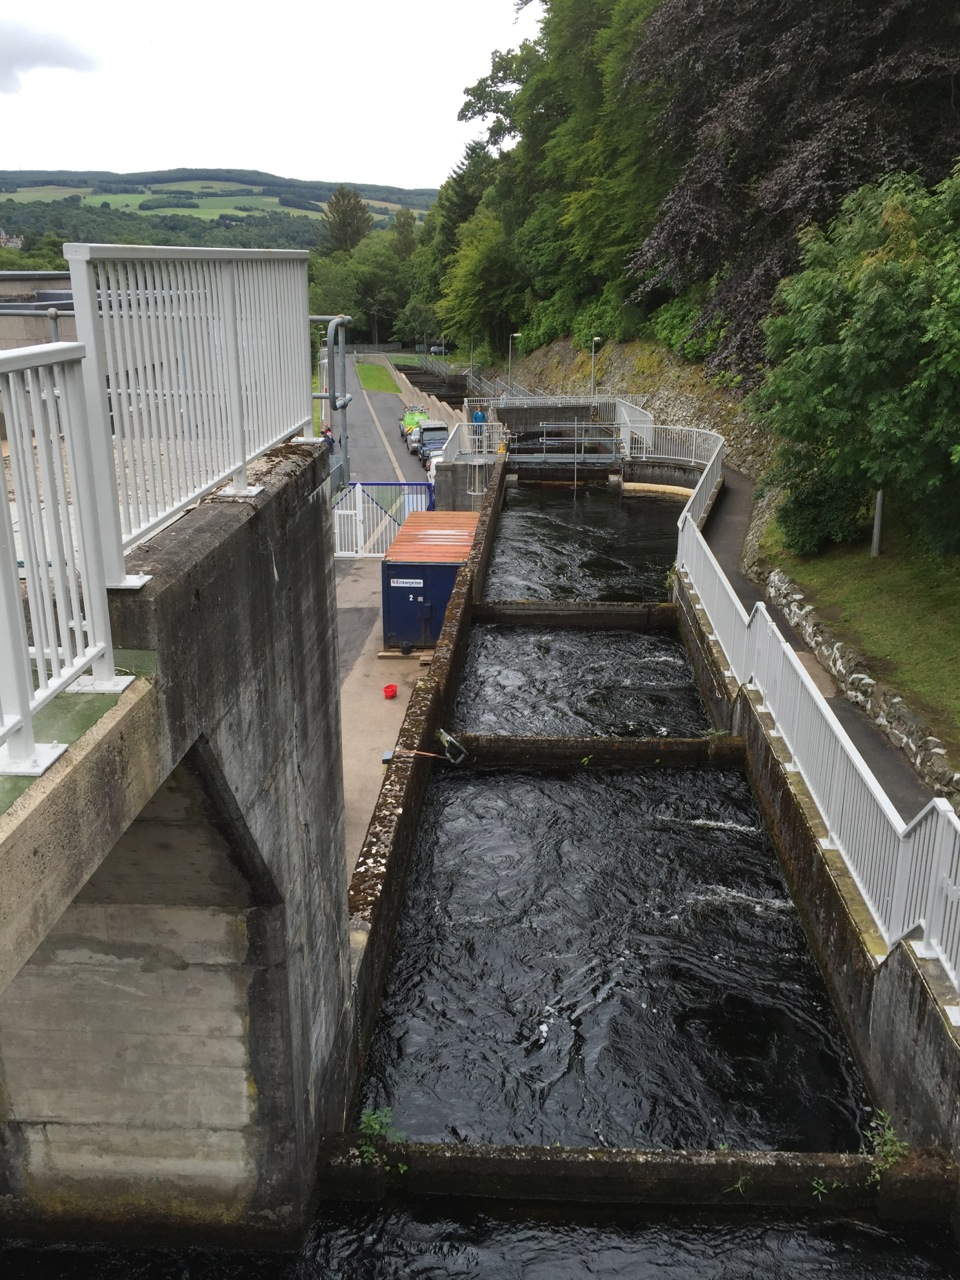 The fish ladder at the hydropower plant at Pitlochry, Scotland. More than 3,000 salmon had used the ladder (a series of lochs of different levels) to bypass the dam this season. Without the ladder, the fish would get sucked into the turbines and most would not survive.